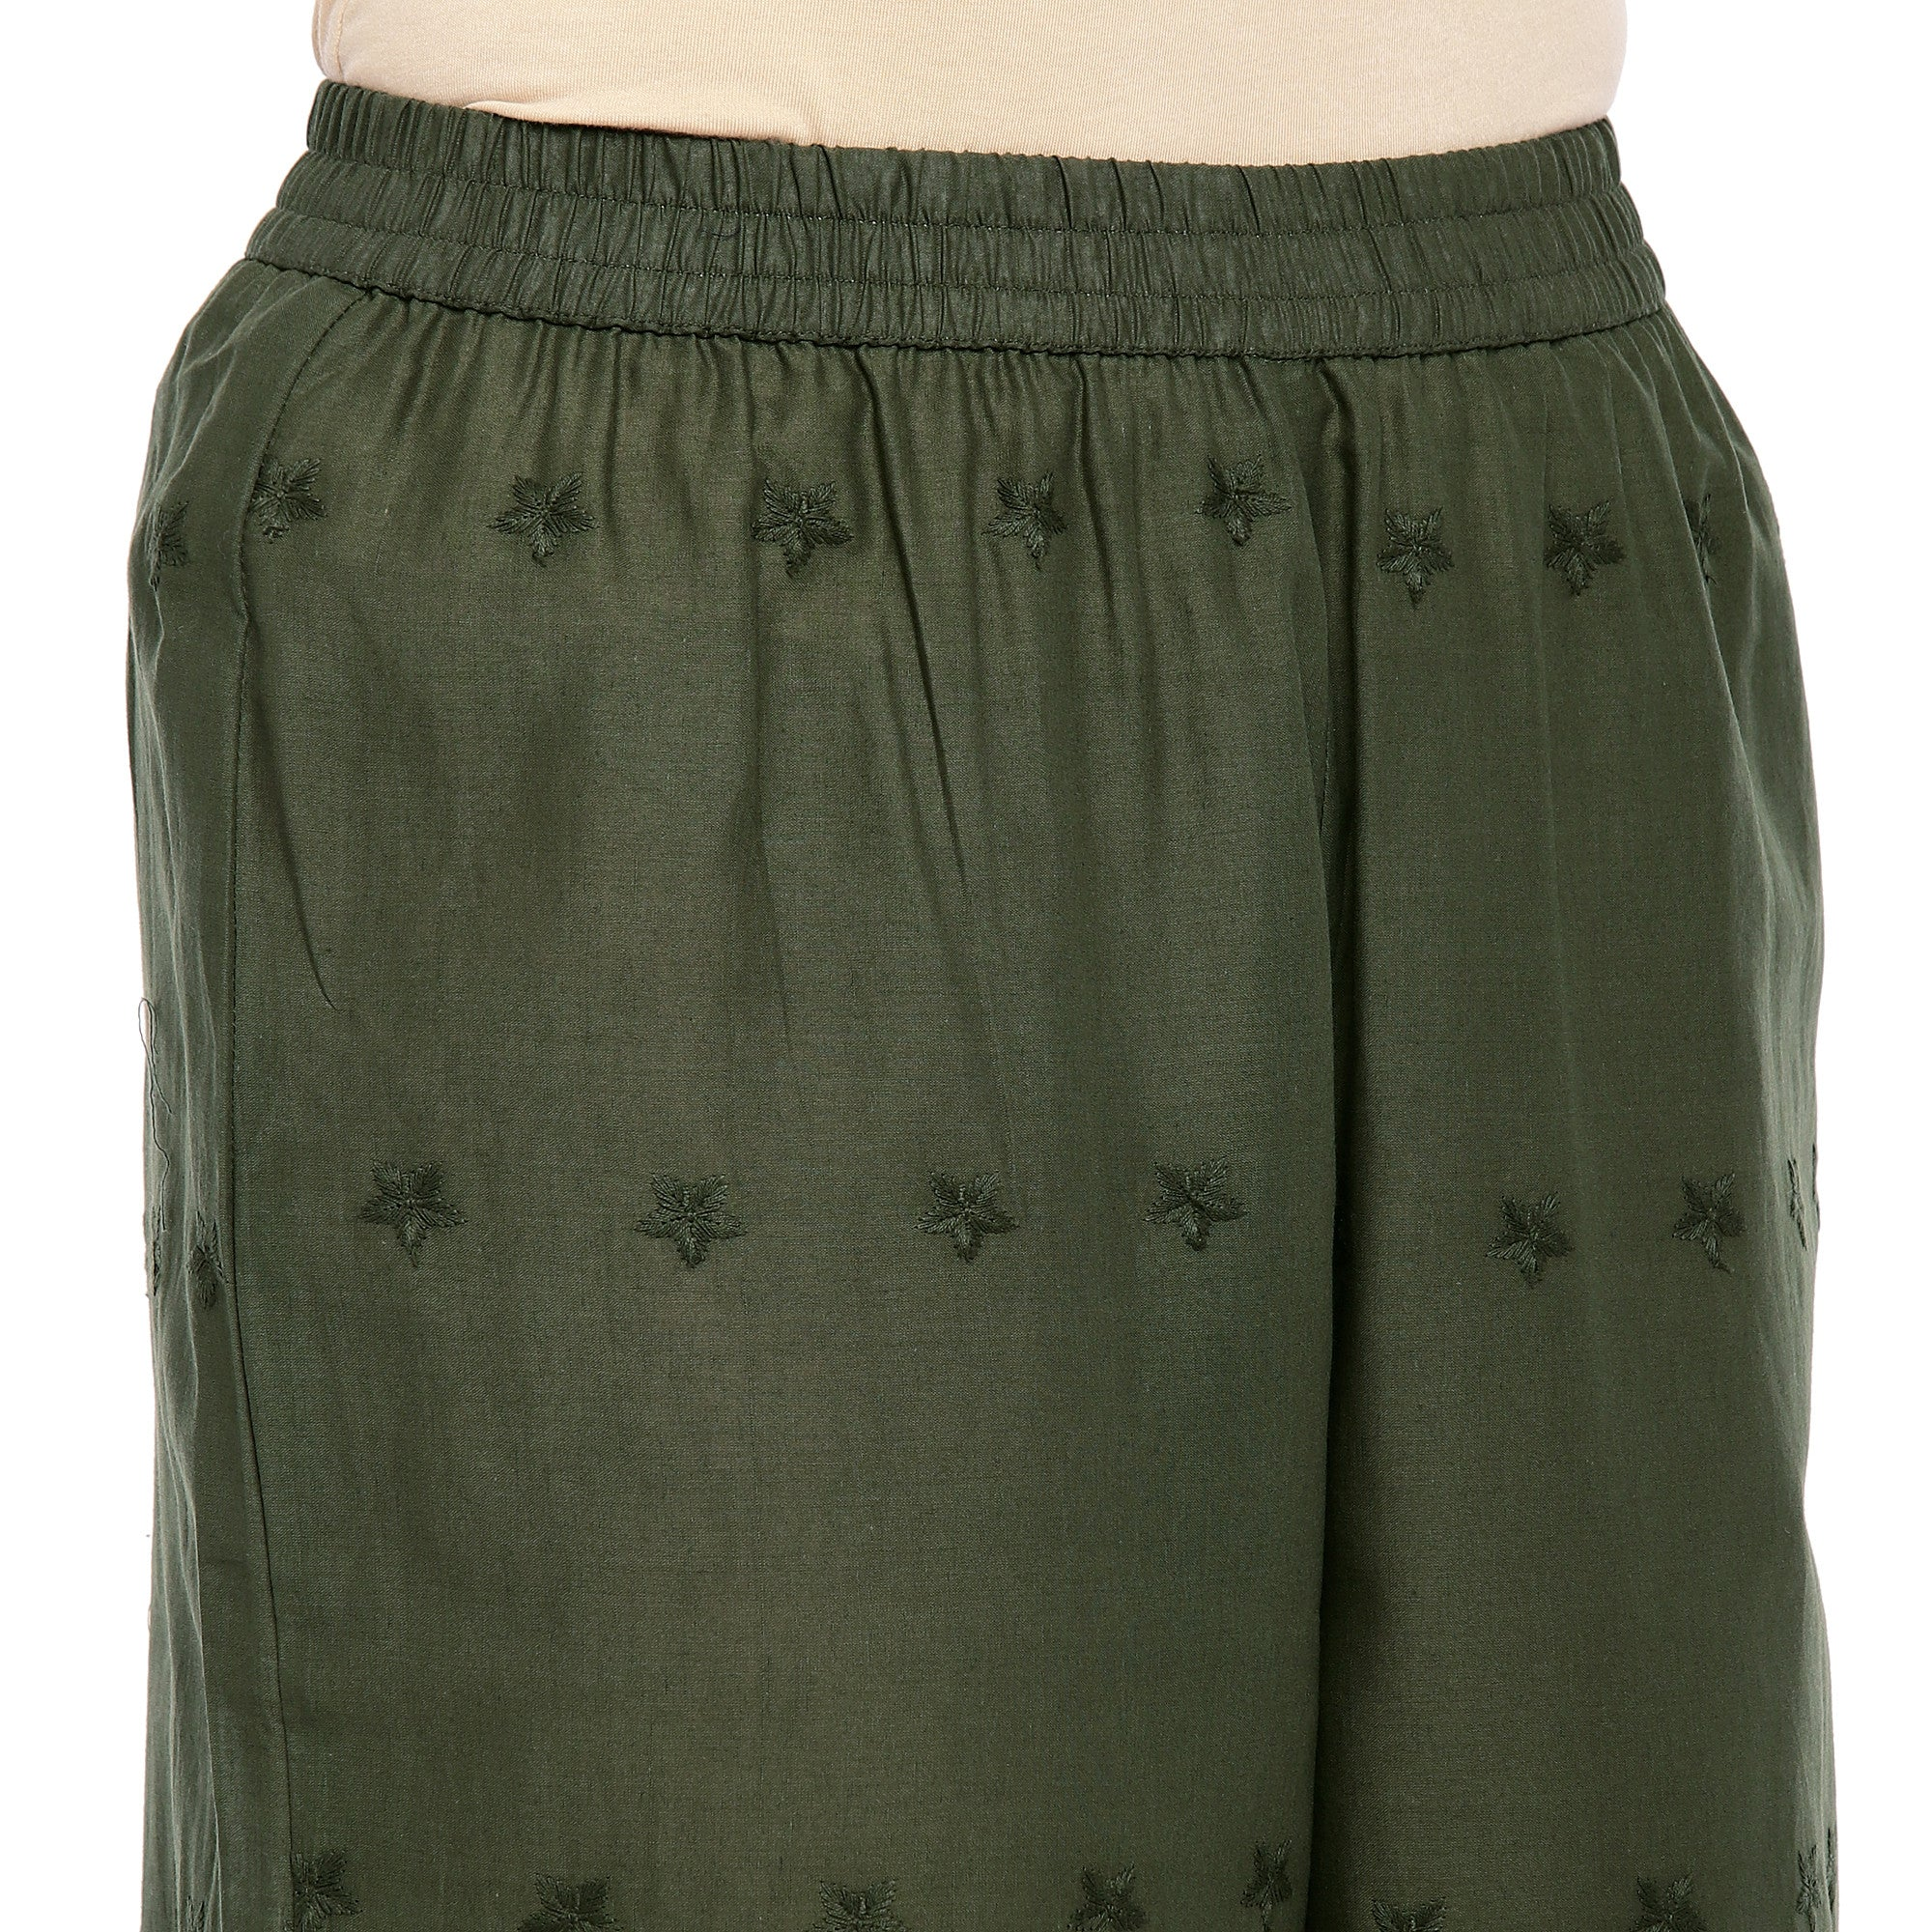 Olive Green Straight Self Design Palazzos-5